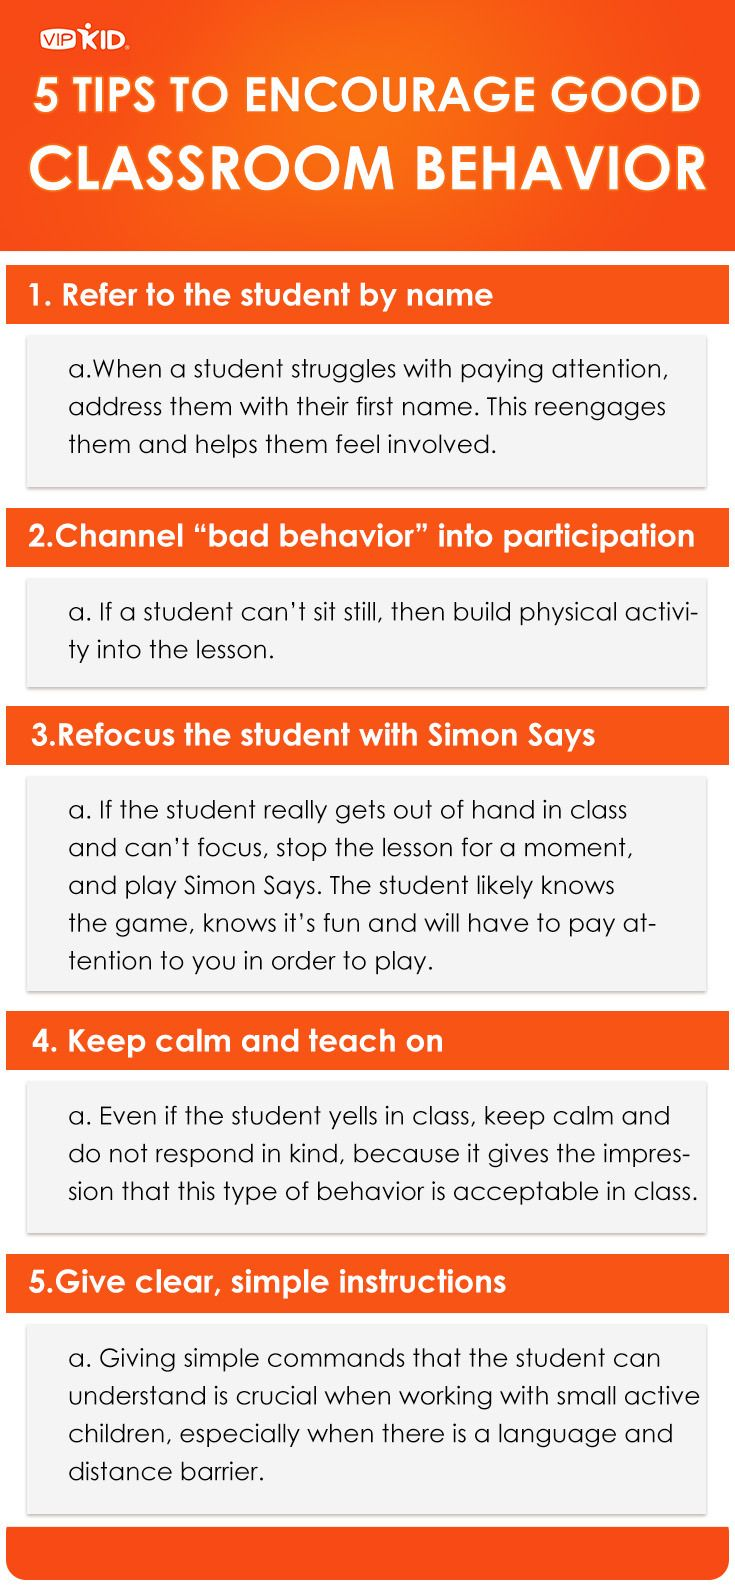 Even the best student can struggle with bad behavior at times. Breaking through this can be particularly difficult in an online classroom with a language barrier. Here are some suggestions for redirecting and remedying bad behavior. What's your go-to method for redirecting the student to the class? http://vblog.vipkid.com.cn?p=101